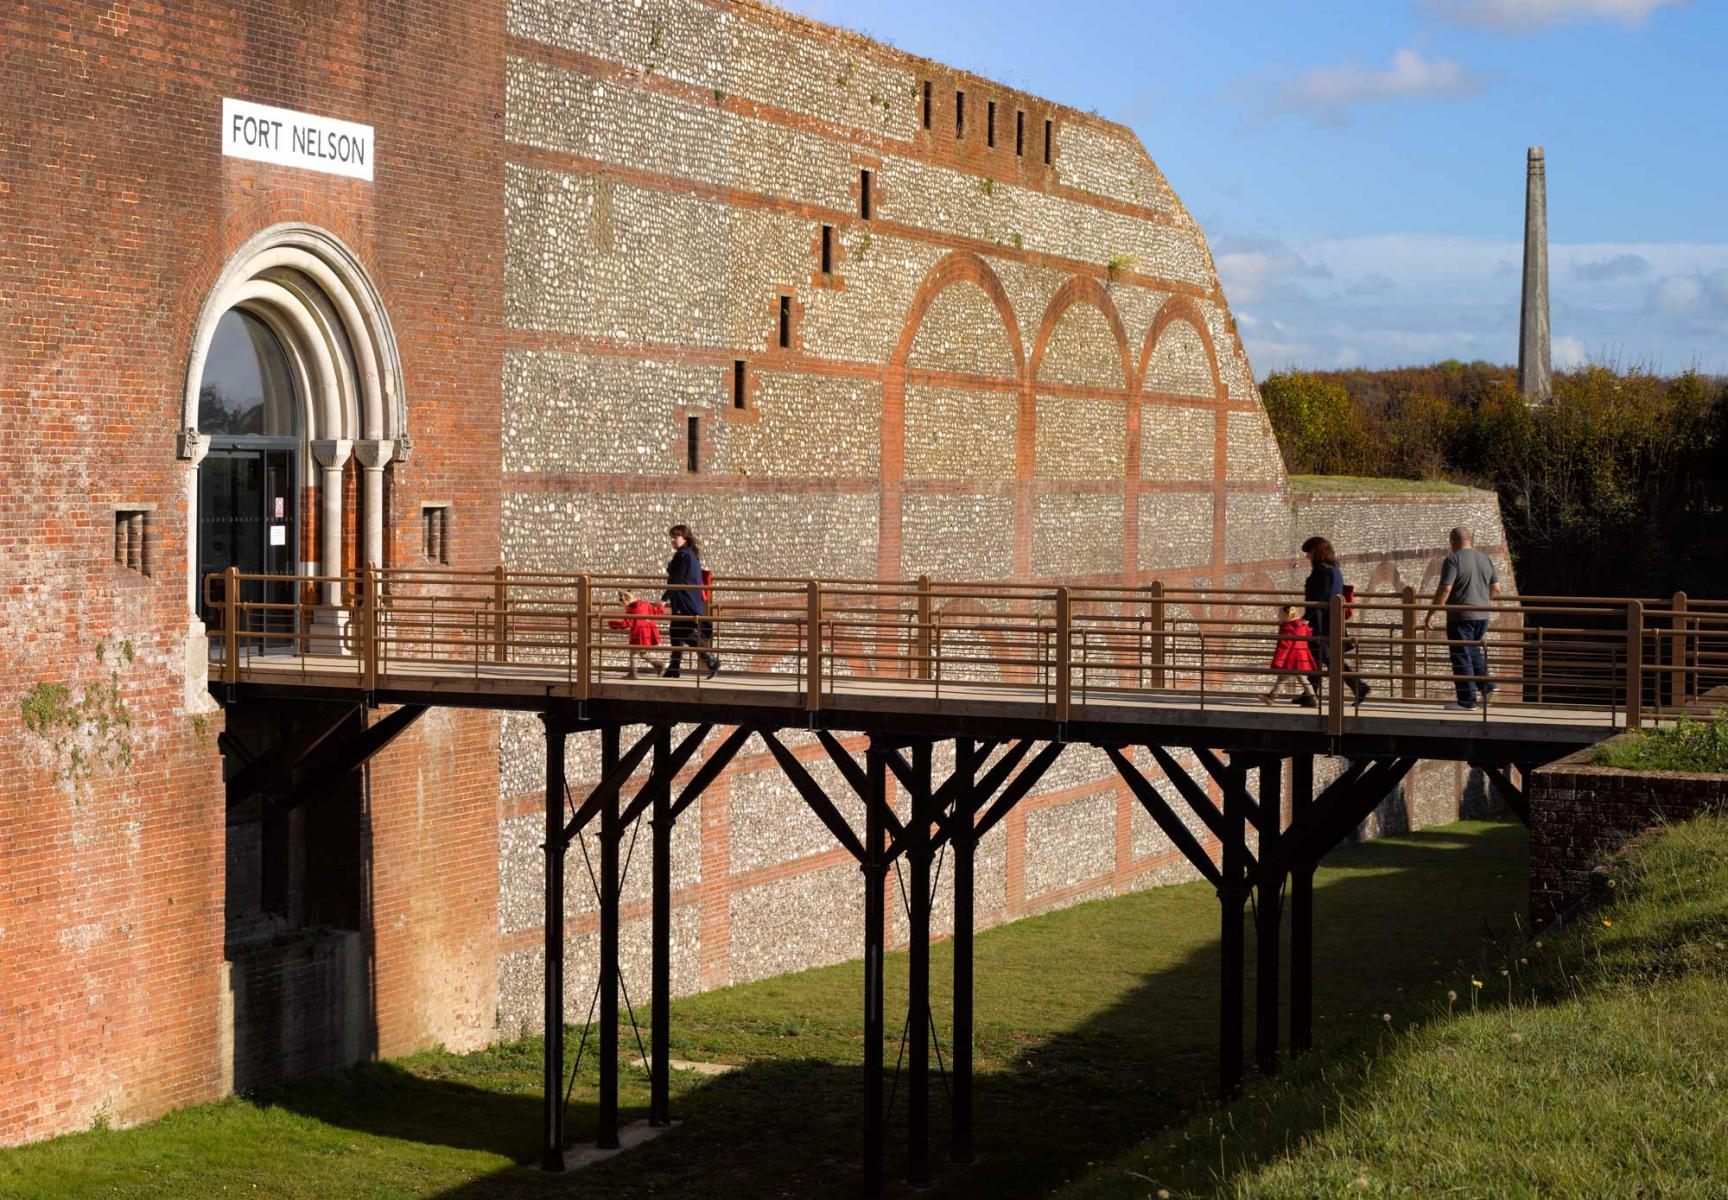 Fort Nelson, Portsmouth, Hampshire - Main entrance bridge